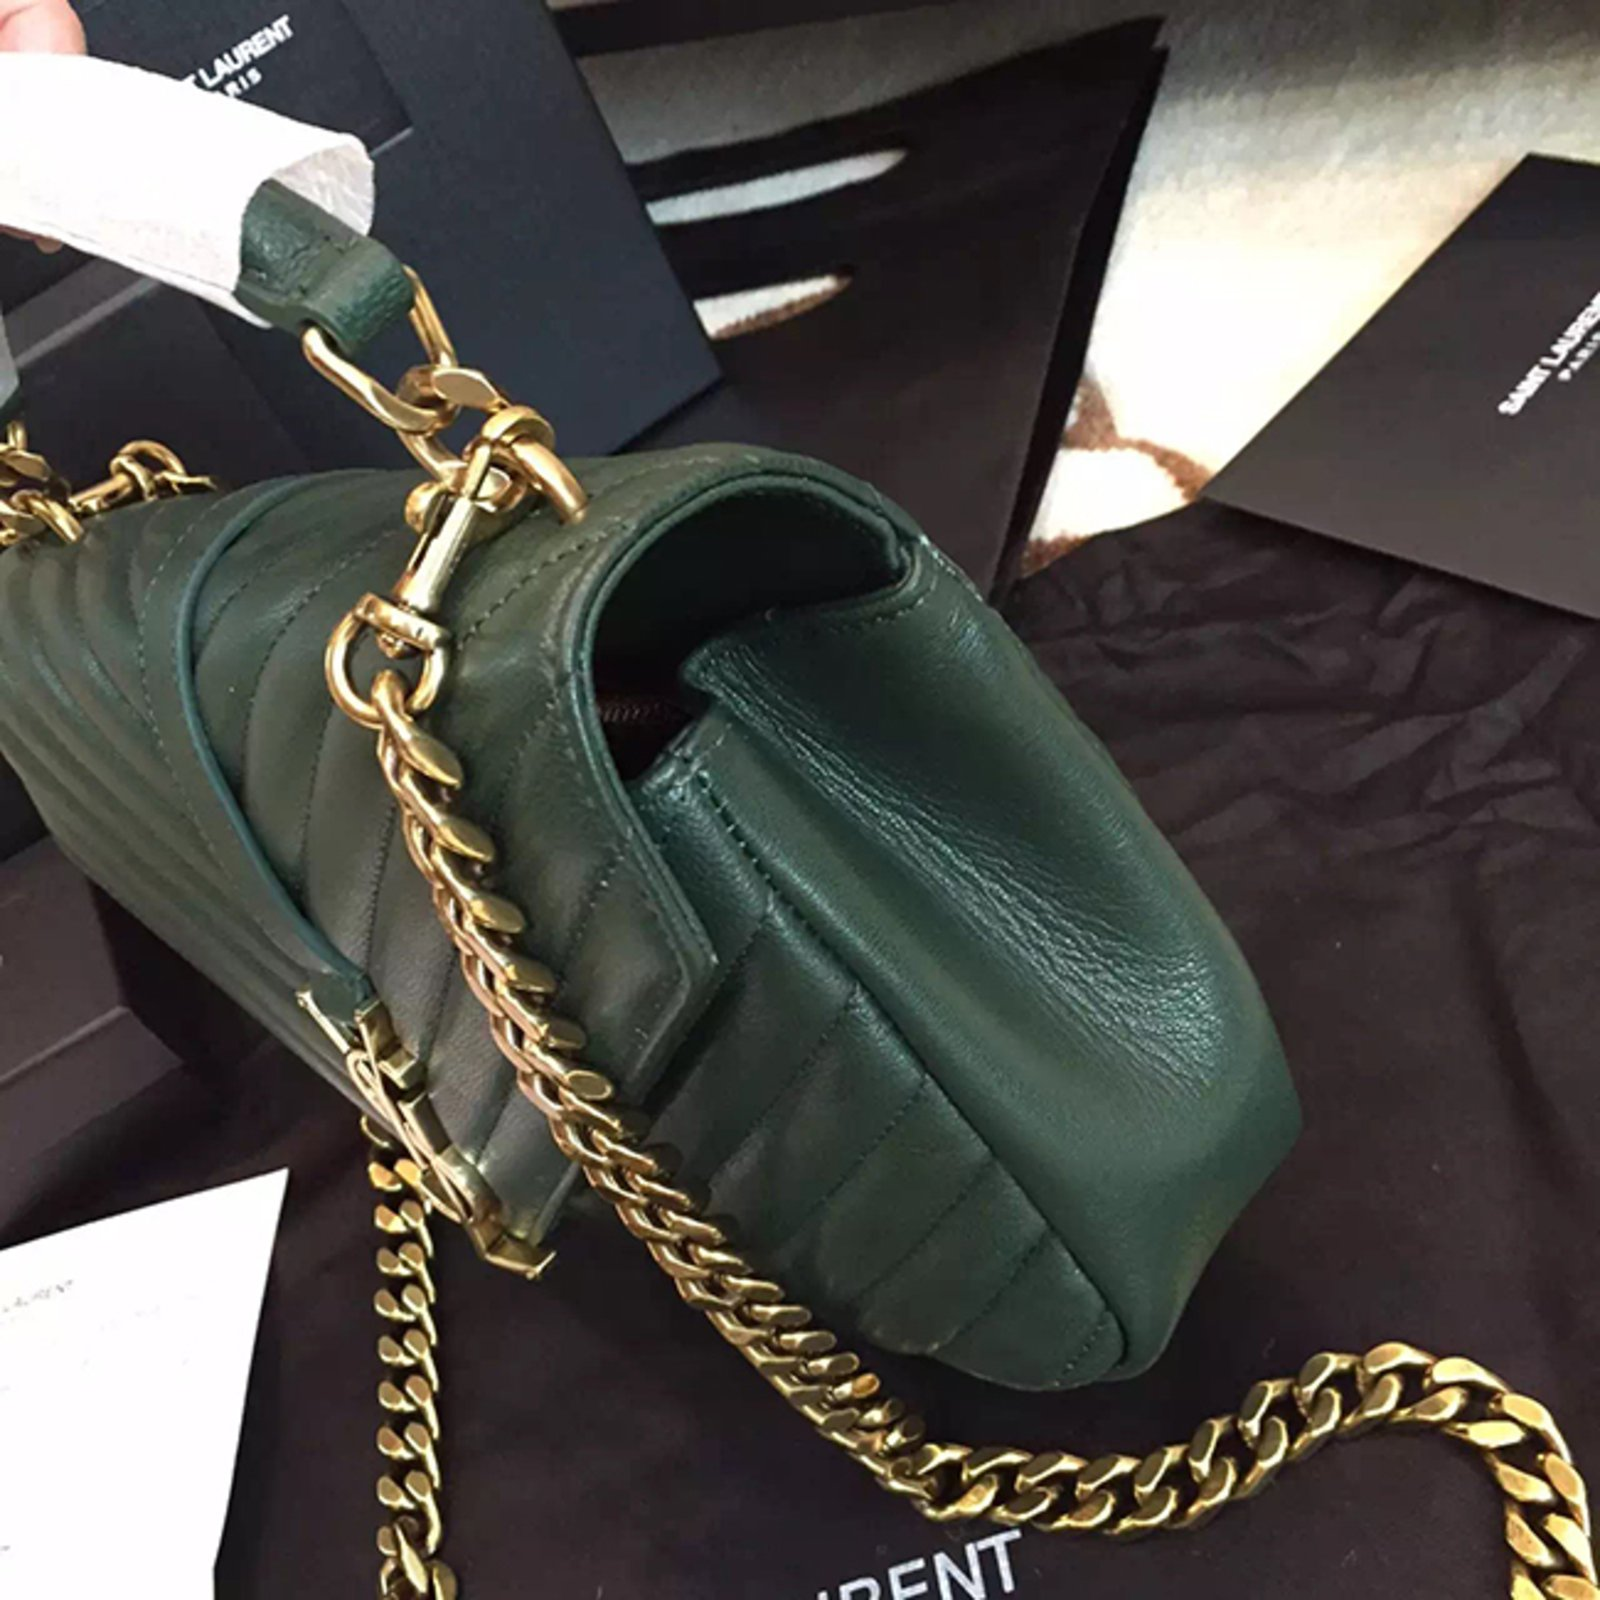 fe101a115e Yves Saint Laurent YSL green college chain shoulder bag medium Handbags  Leather Green ref.57110 - Joli Closet